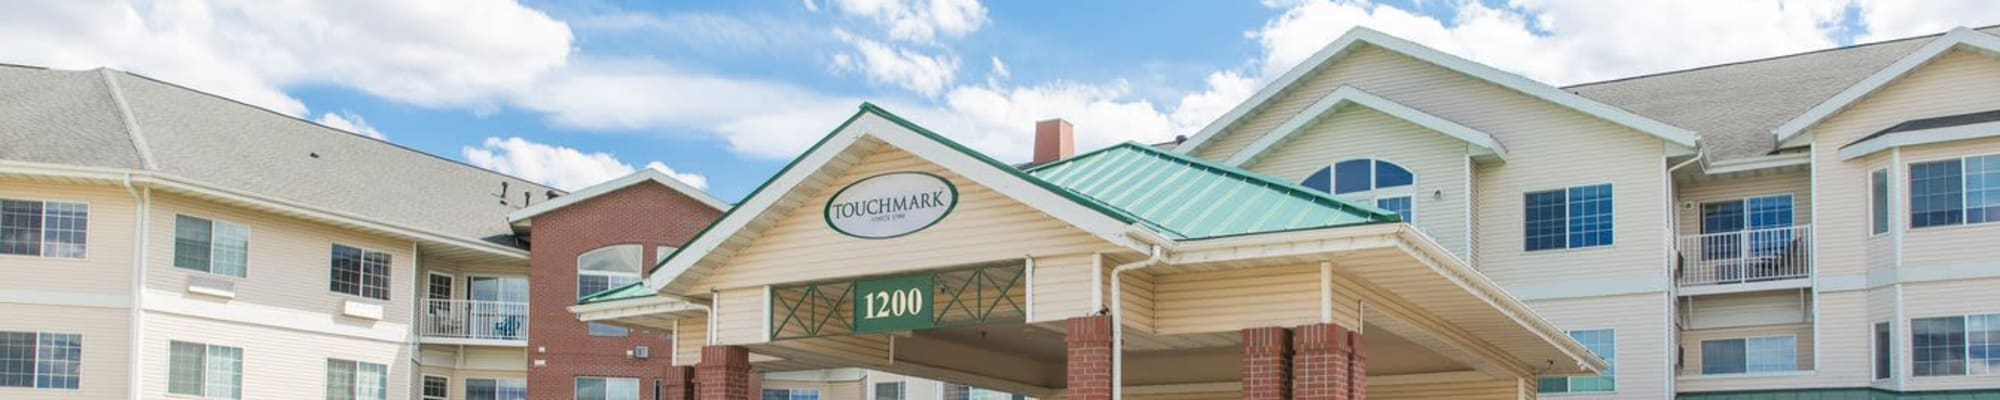 Reviews of Touchmark at Harwood Groves in Fargo, North Dakota